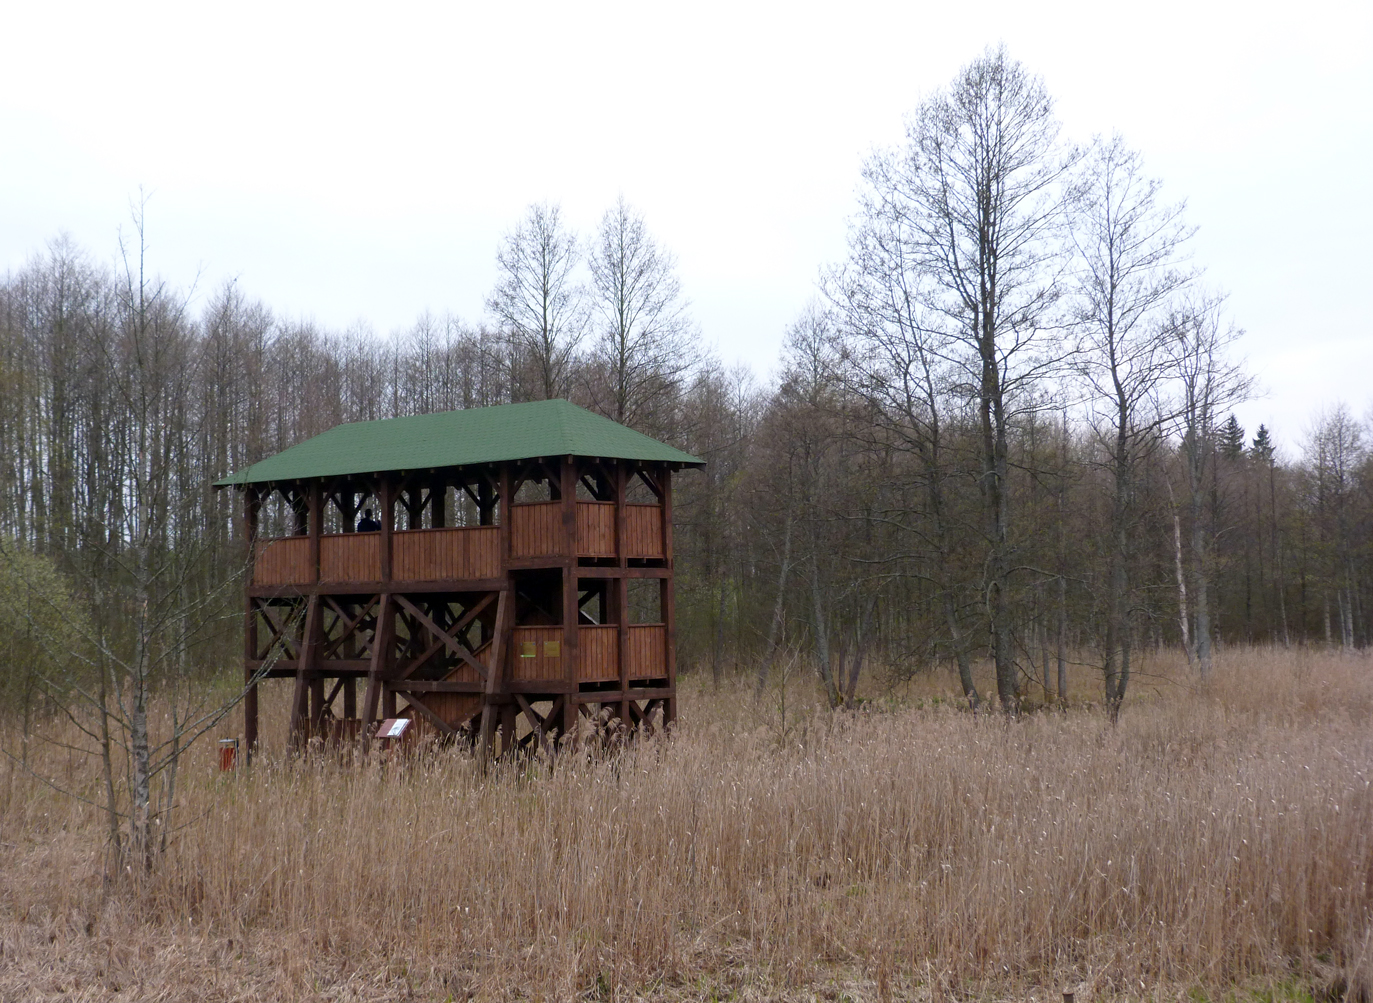 There were lots of viewing platforms such as this in Poland - many for wildlife watching, but I suppose many also for hunters perhaps.